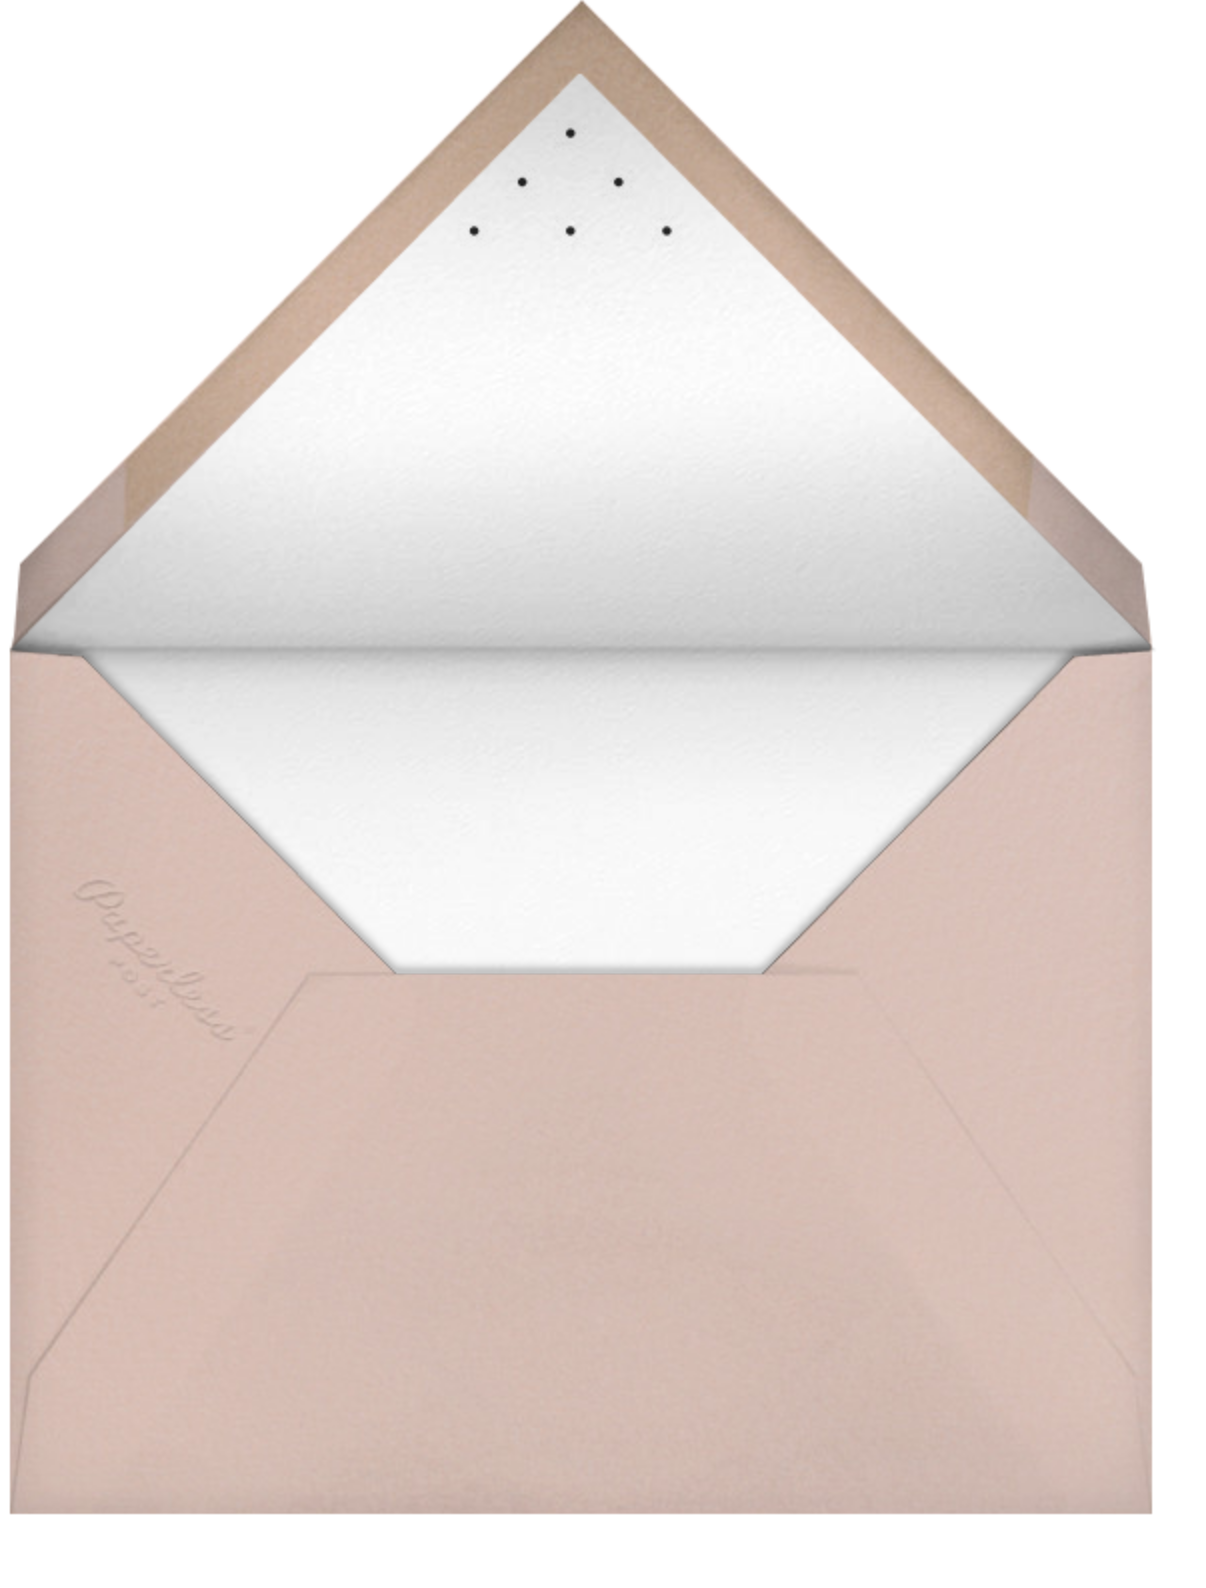 Square Centered (Pink) - Paperless Post - null - envelope back